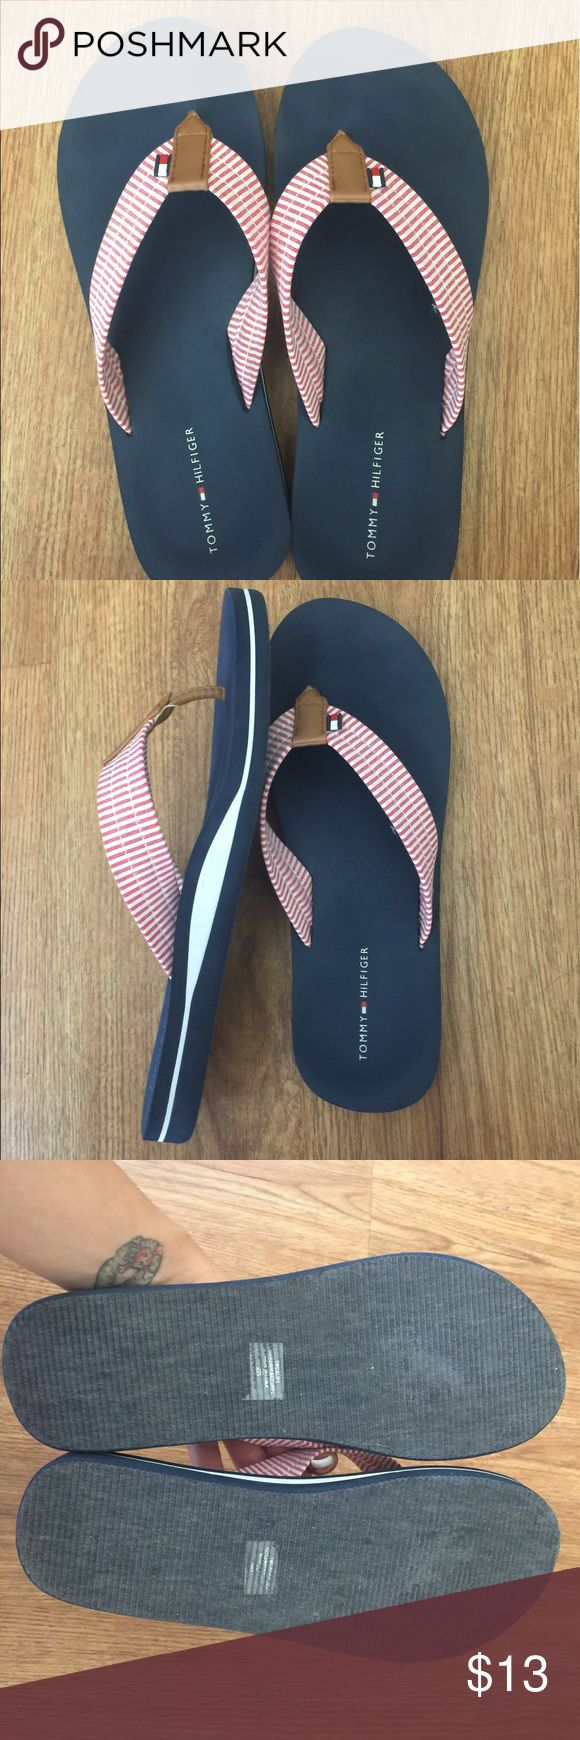 Flip flops Nautical flip flops in like new condition. Tommy Hilfiger Shoes Sandals